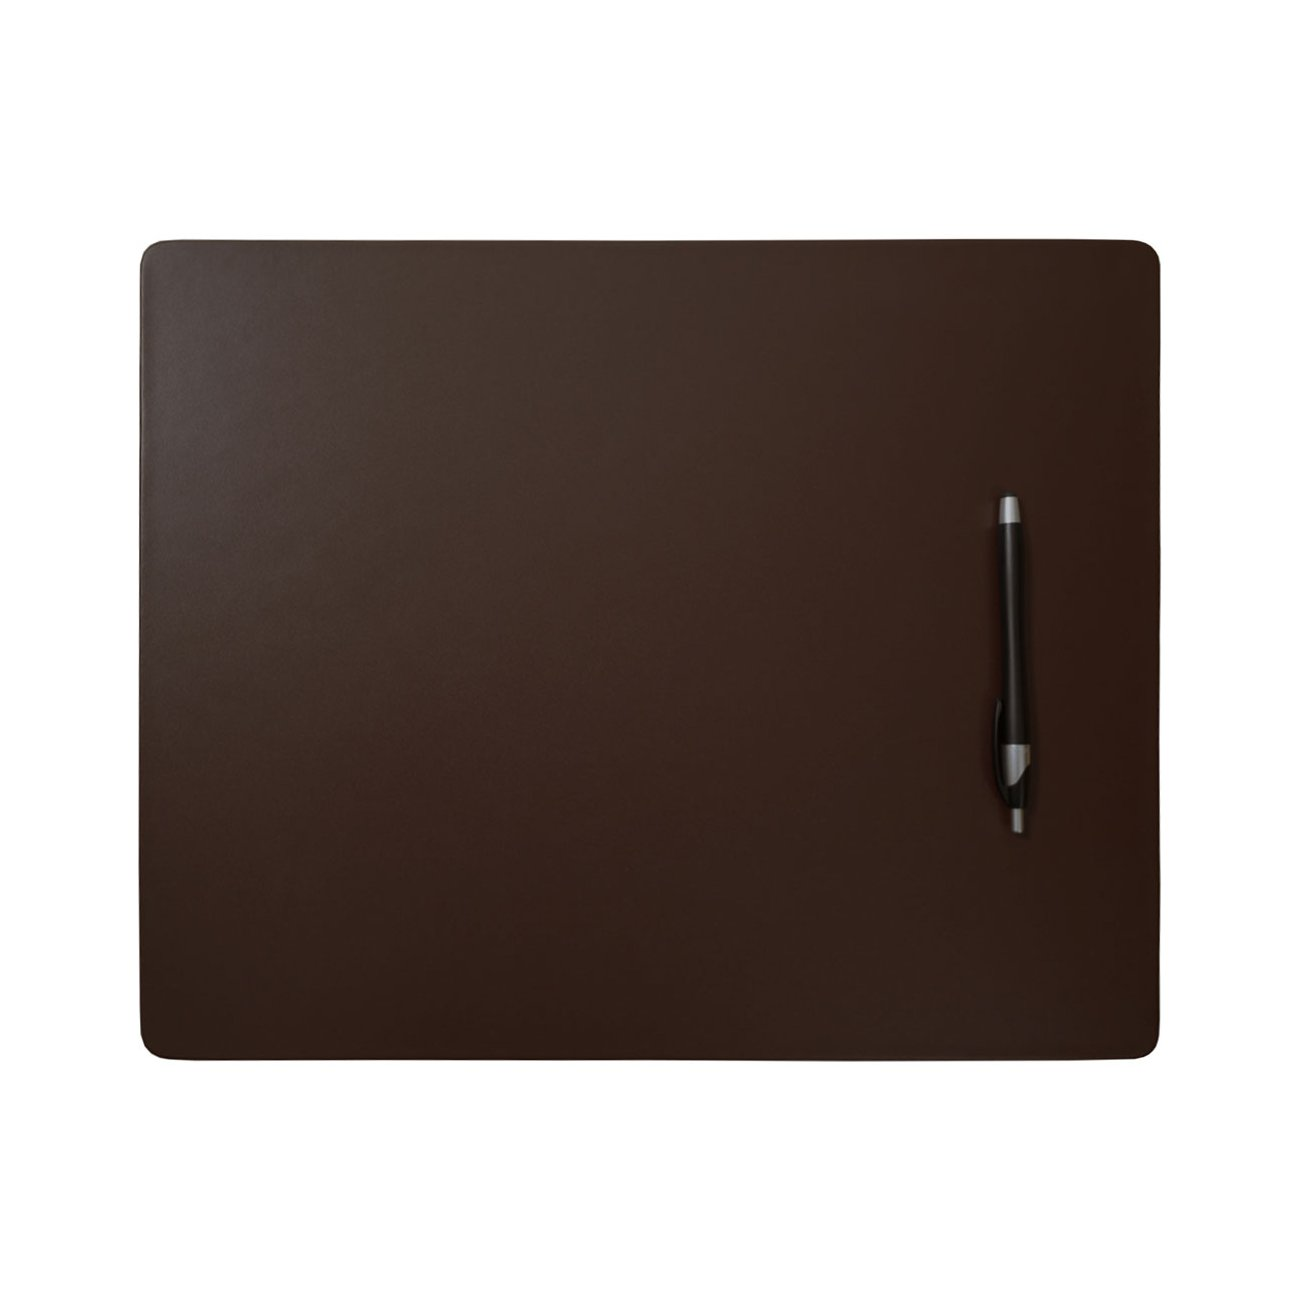 "Leather Placemats - 17"" x 14"", Chestnut Brown"